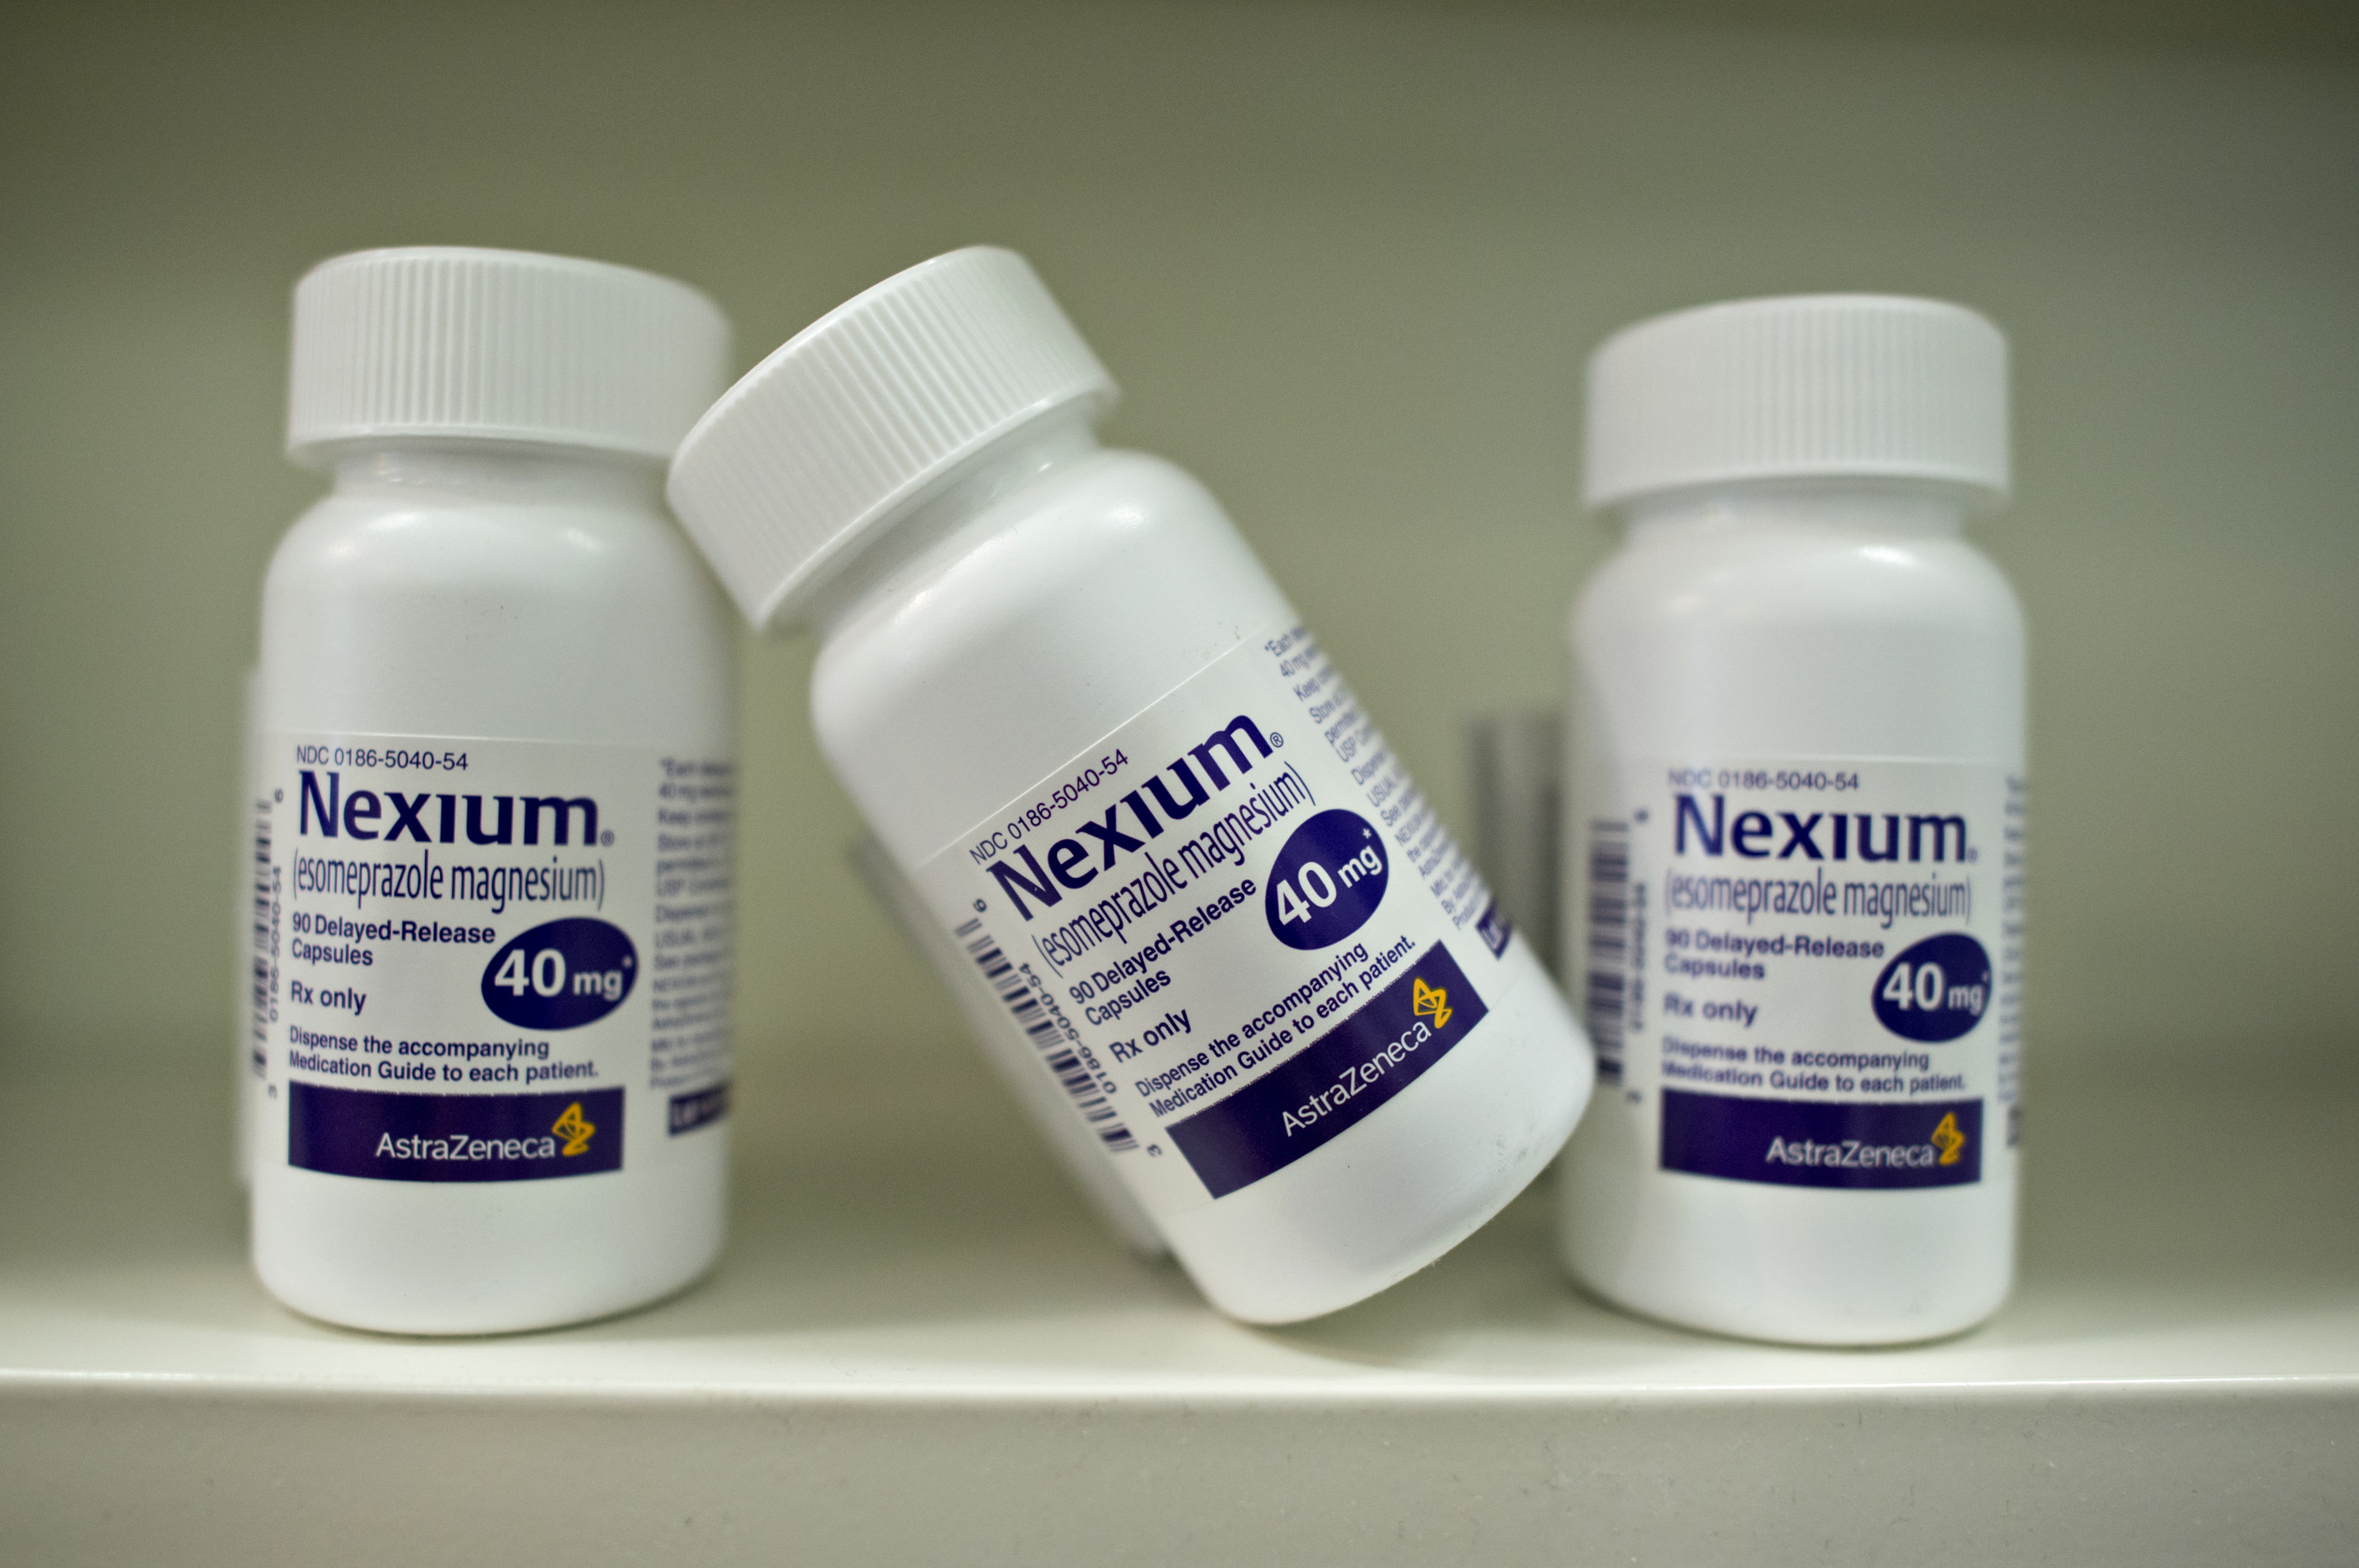 Bottles of AstraZeneca Plc's Nexium heartburn medication are arranged for a photograph at a pharmacy in Princeton, Illinois, U.S., on Wednesday, Aug. 20, 2014.